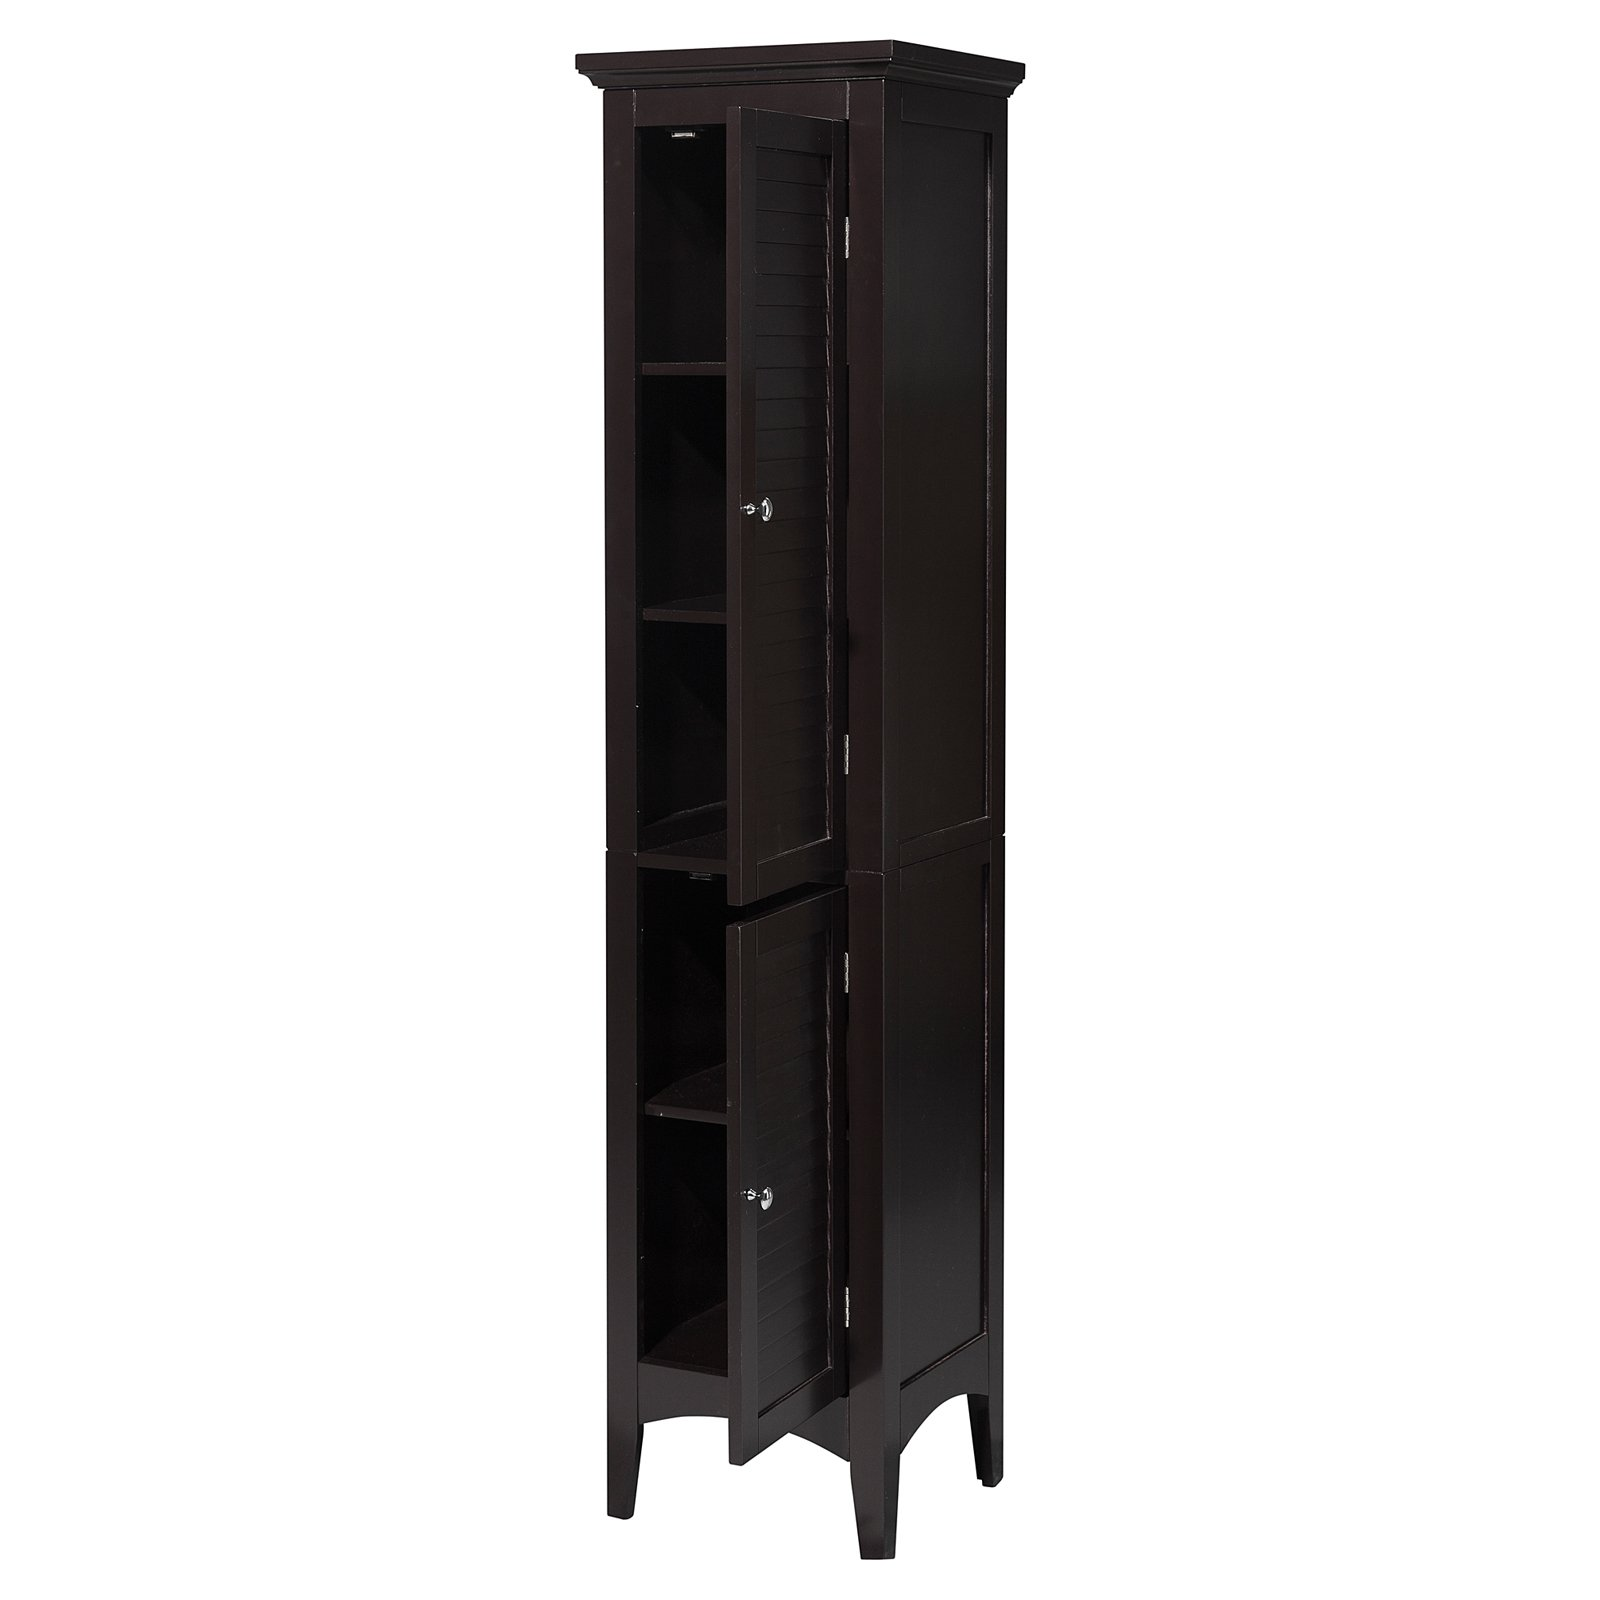 Elegant Home Fashions Sicily Linen Tower With 2 Shutter Doors Dark Espresso